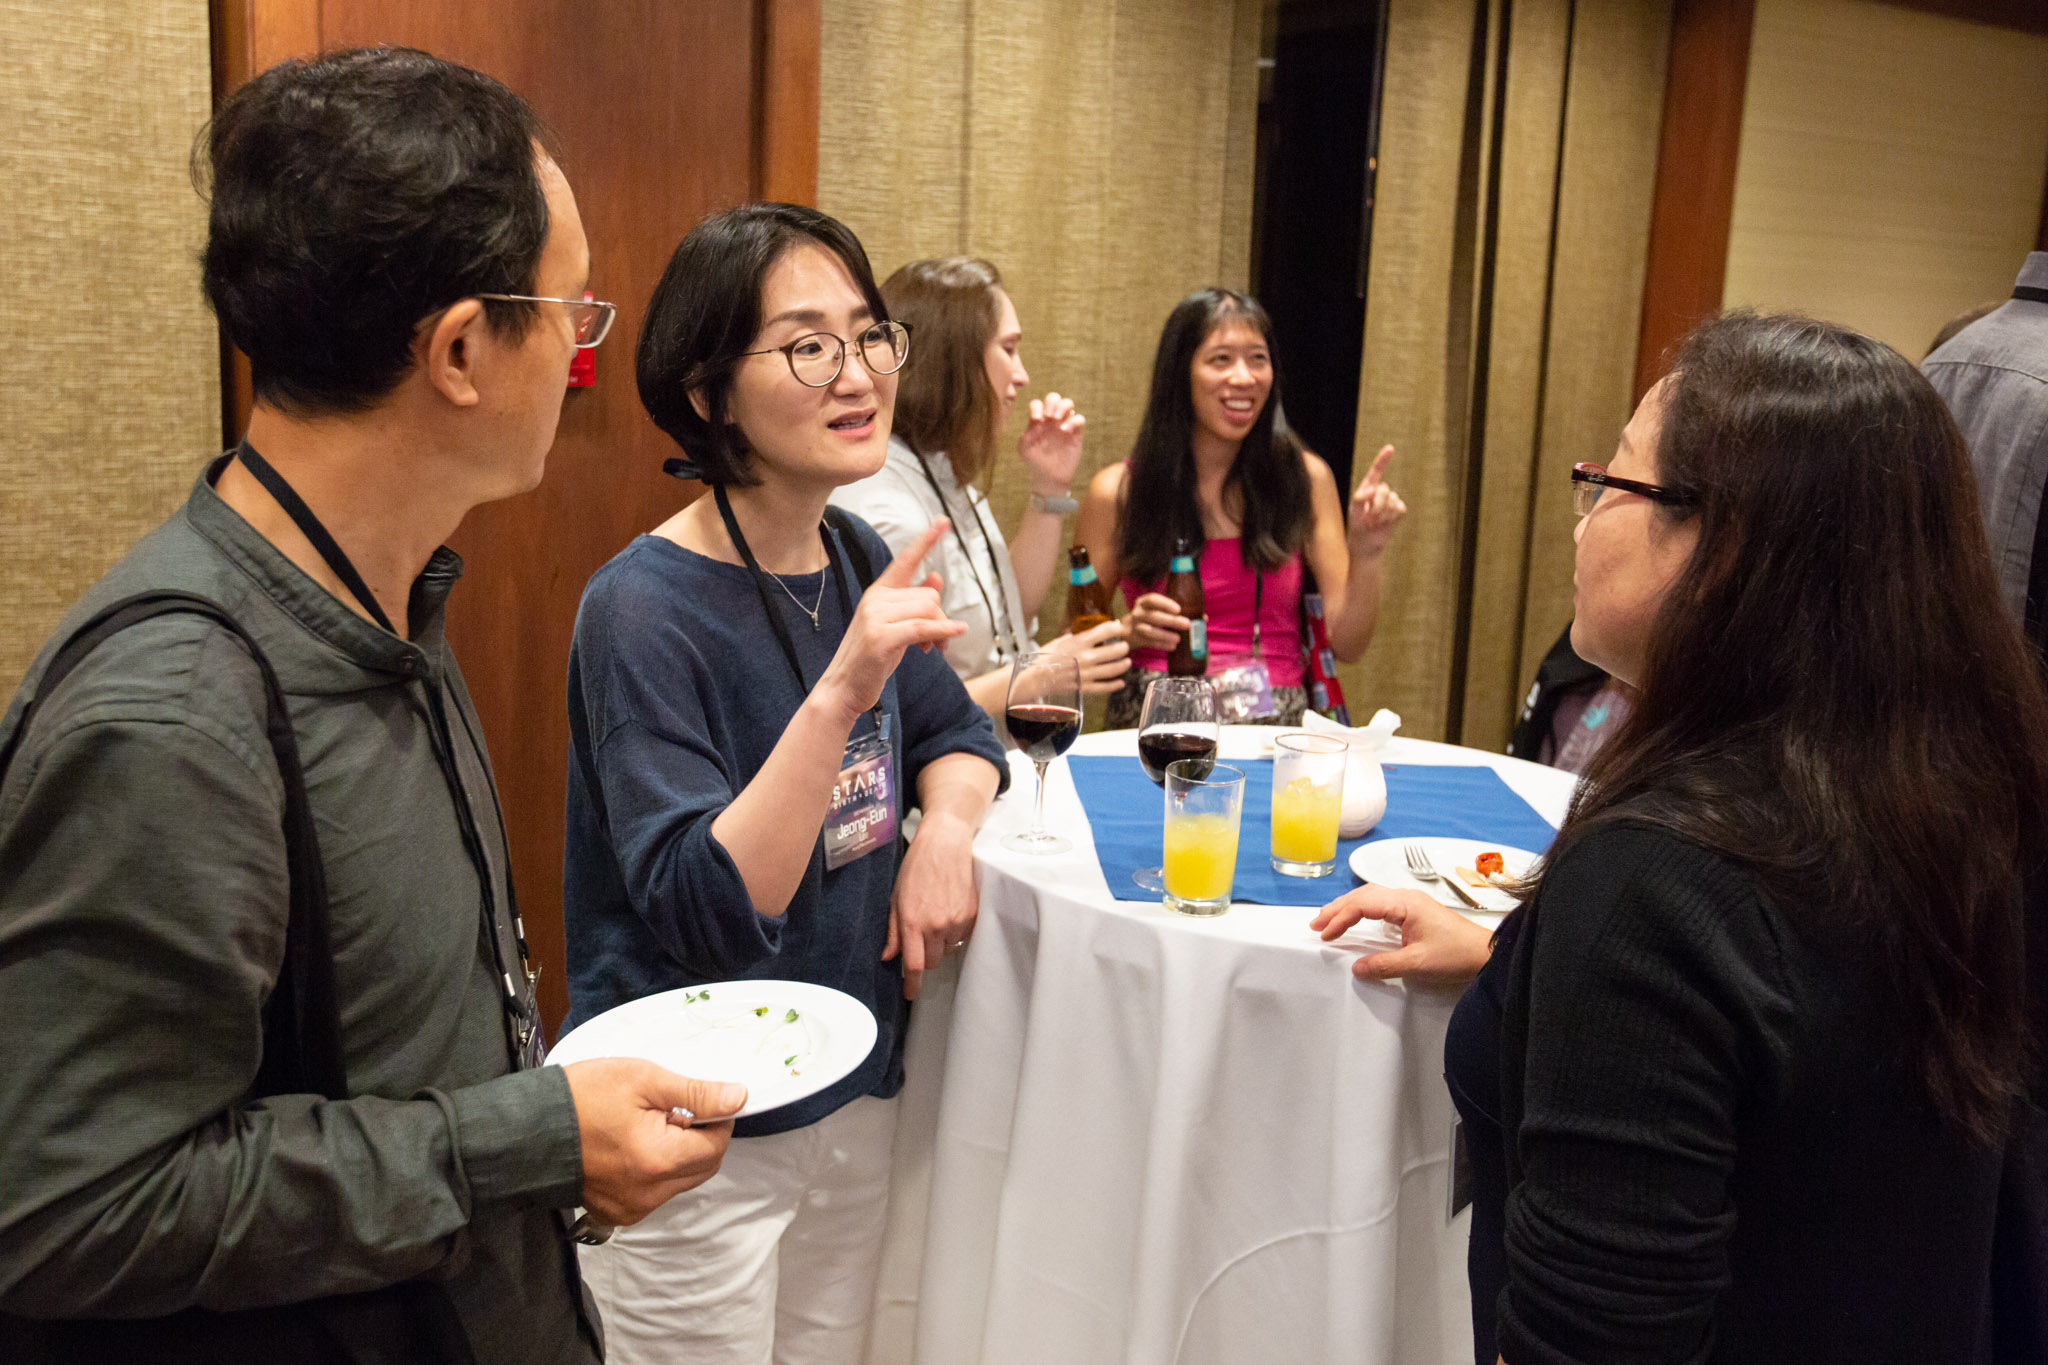 GMTCSM18-Welcome Reception-013.jpg